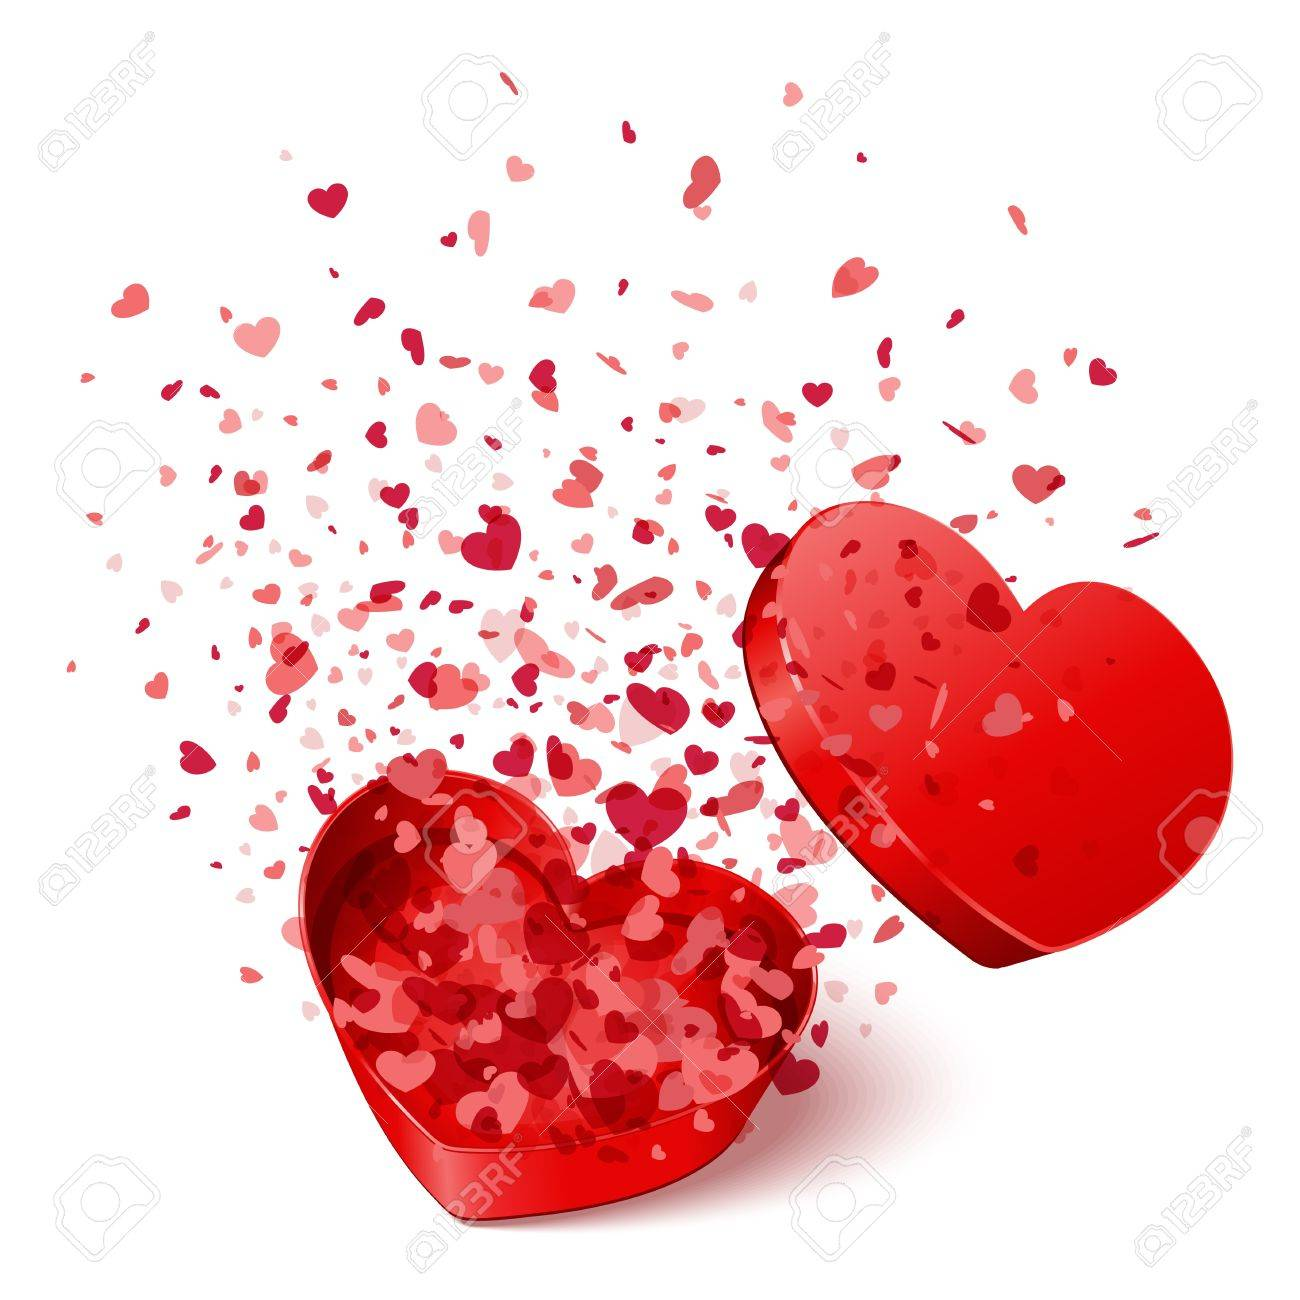 Heart Gift Present With Fly Hearts Valentine Day Vector Illustration..  Royalty Free Cliparts, Vectors, And Stock Illustration. Image 11895303.